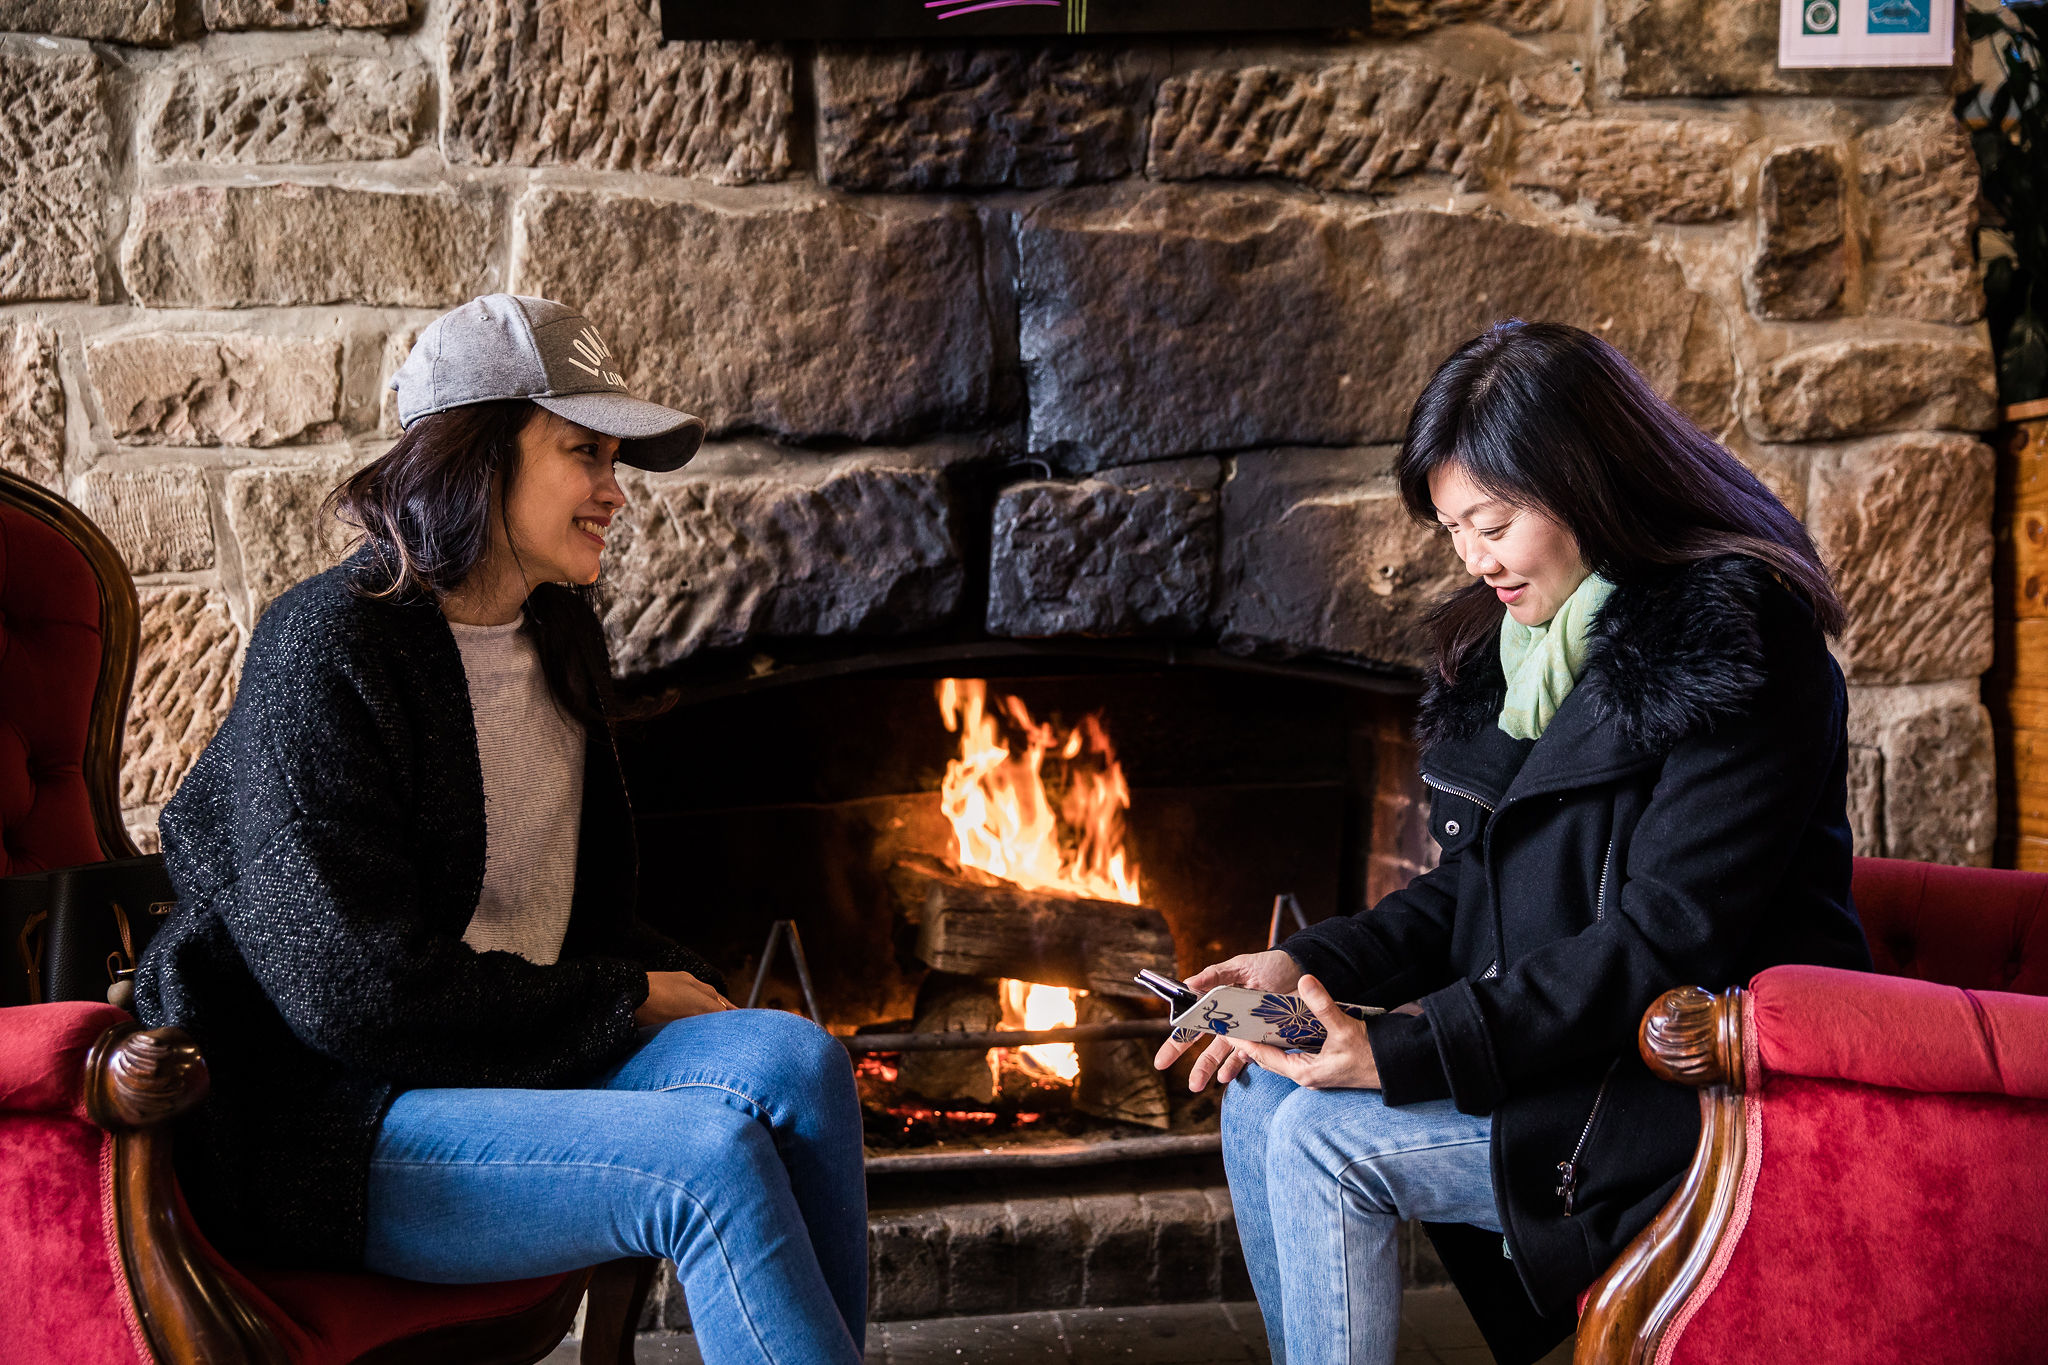 Friends by the fire